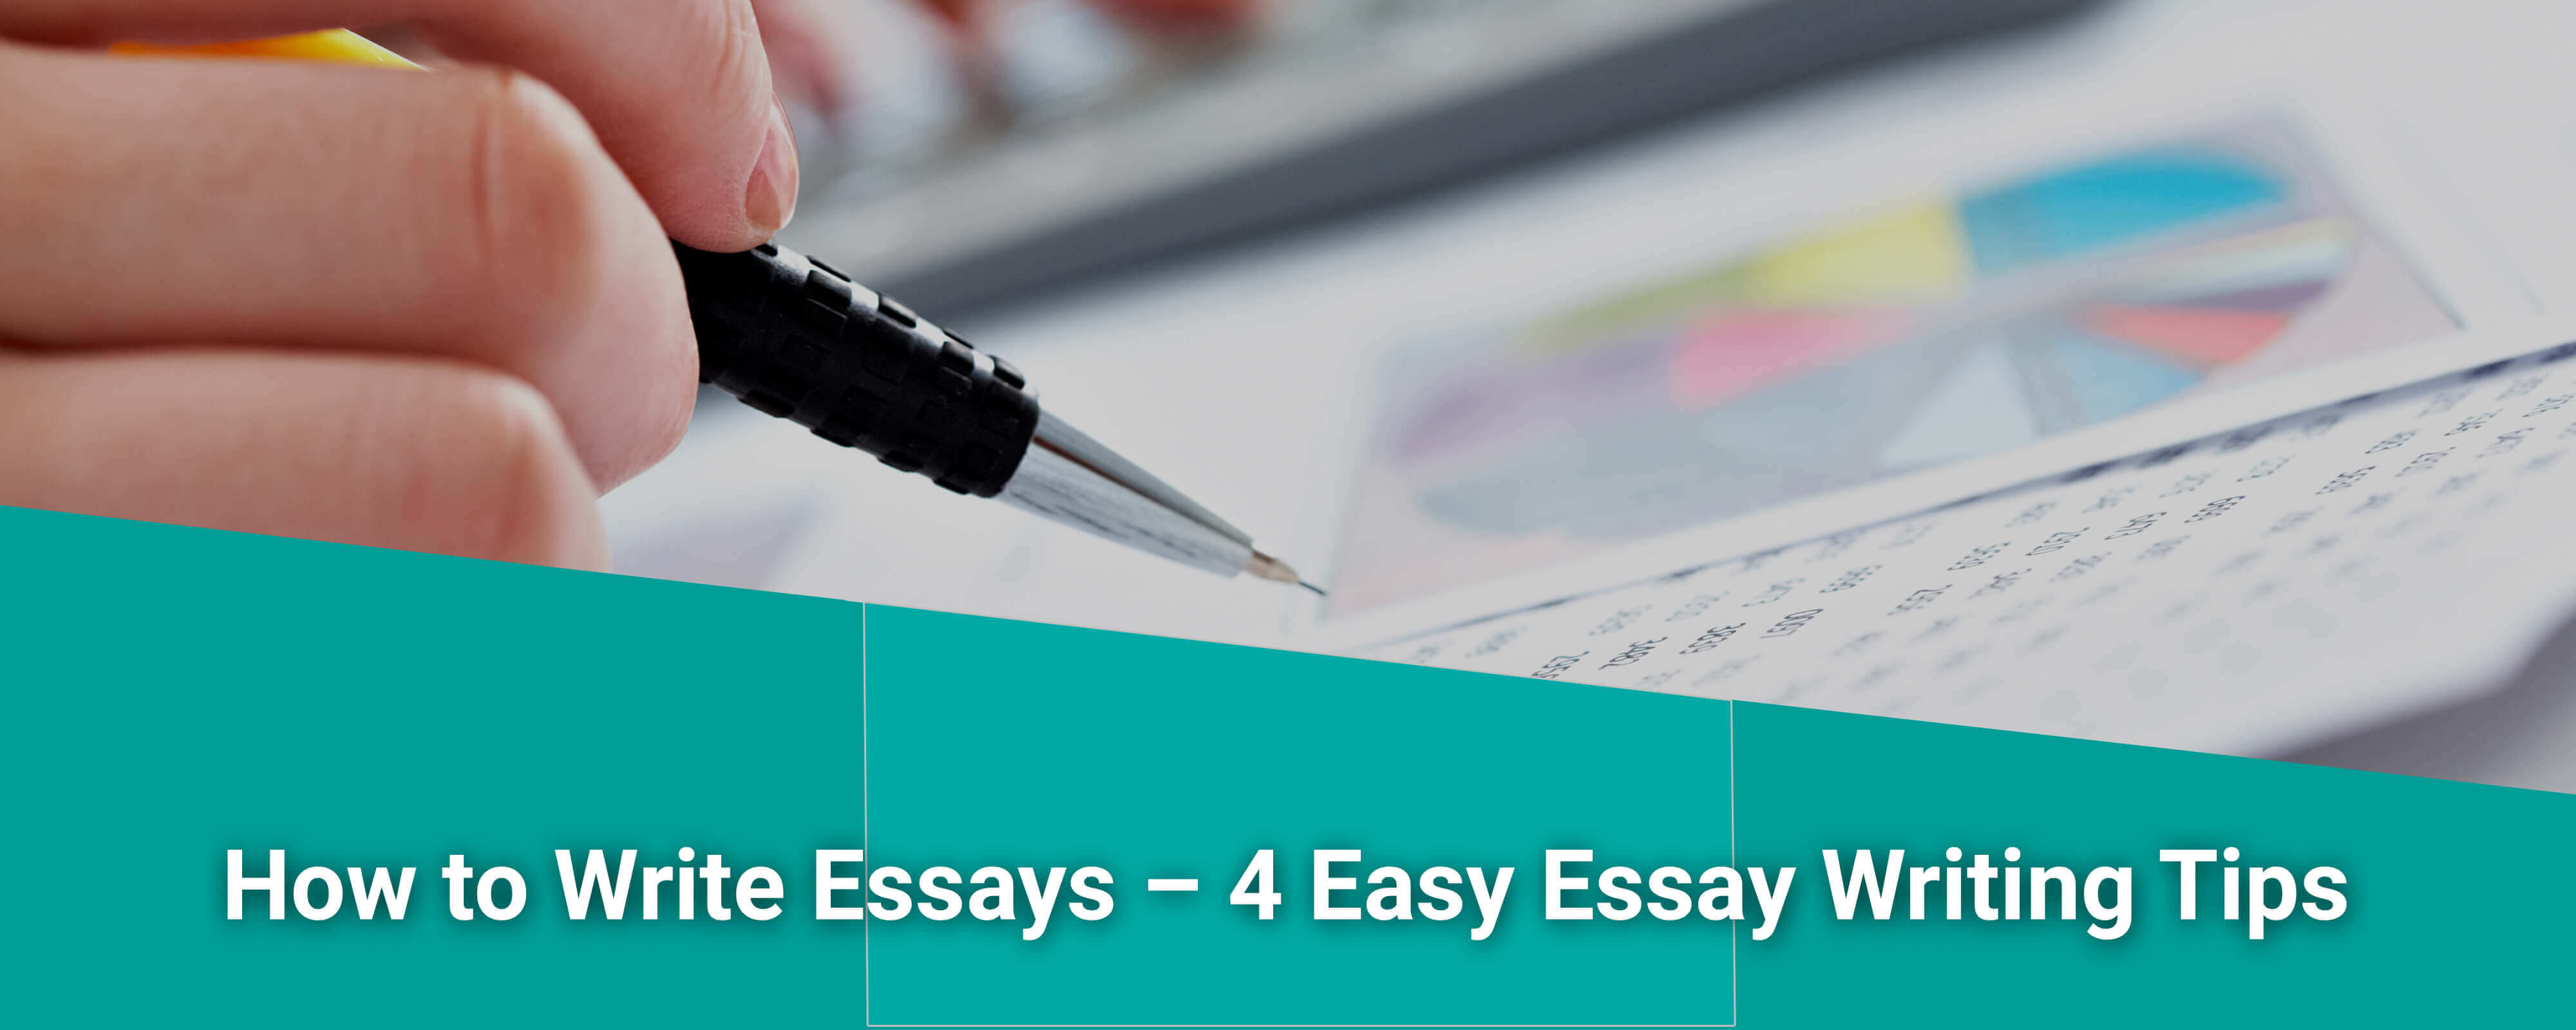 How to Write Essays – 4 Easy Essay Writing Tips